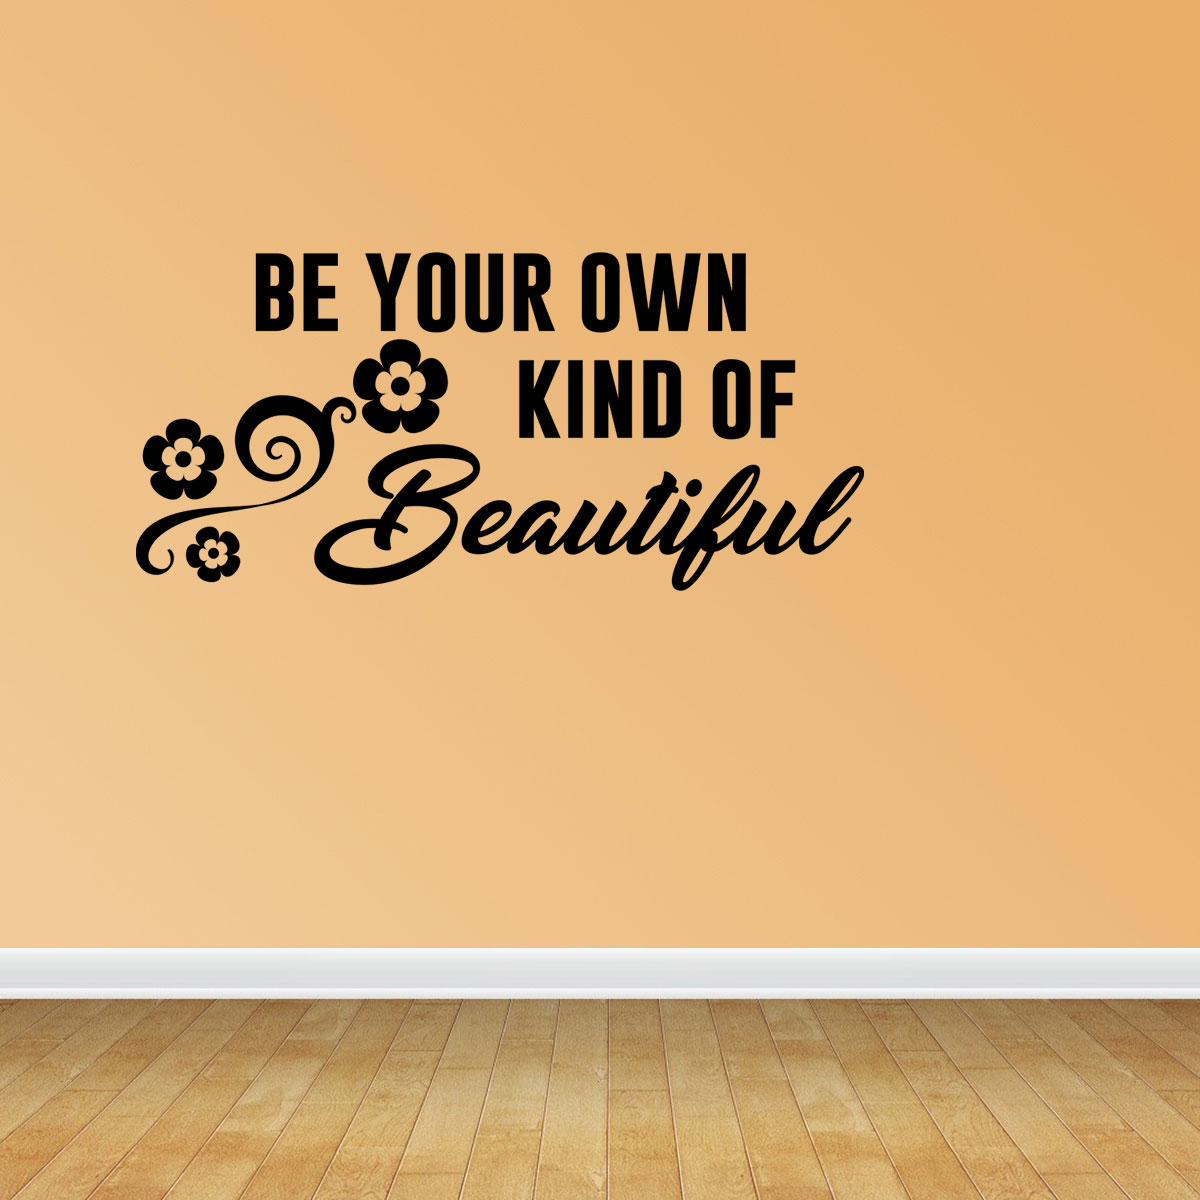 Amazing Marilyn Monroe Wall Art Quotes Image - The Wall Art ...